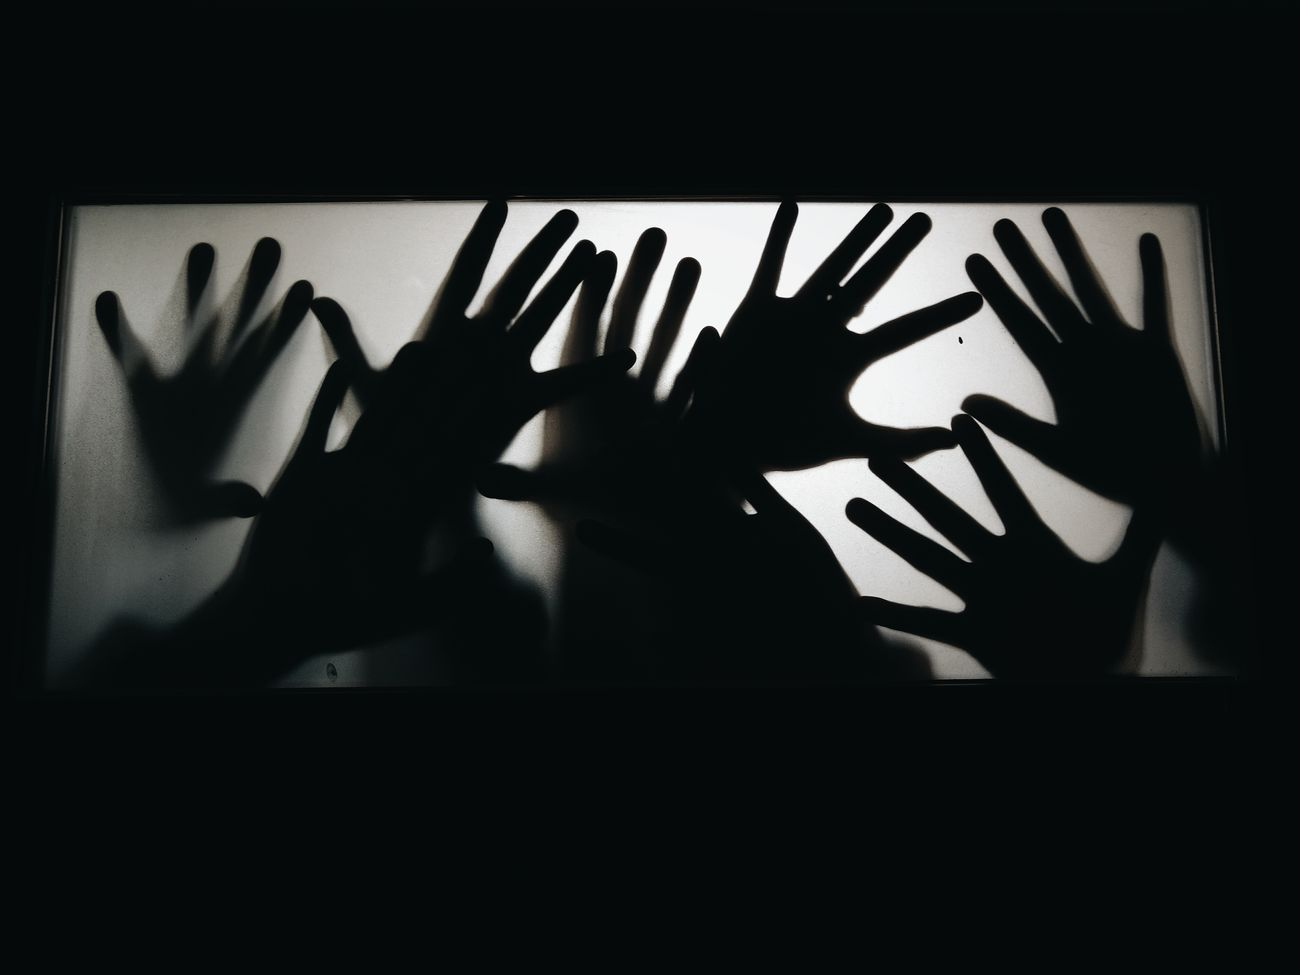 """""""We're Here..."""" Human Hand Shadow Human Body Part Back Lit Silhouette Touching Horror Frosted Glass Adult Indoors  Storytelling Experimental Conceptual EyeEm Gallery Moto X Play Photo Smartphone Photography My Smartphone Life"""